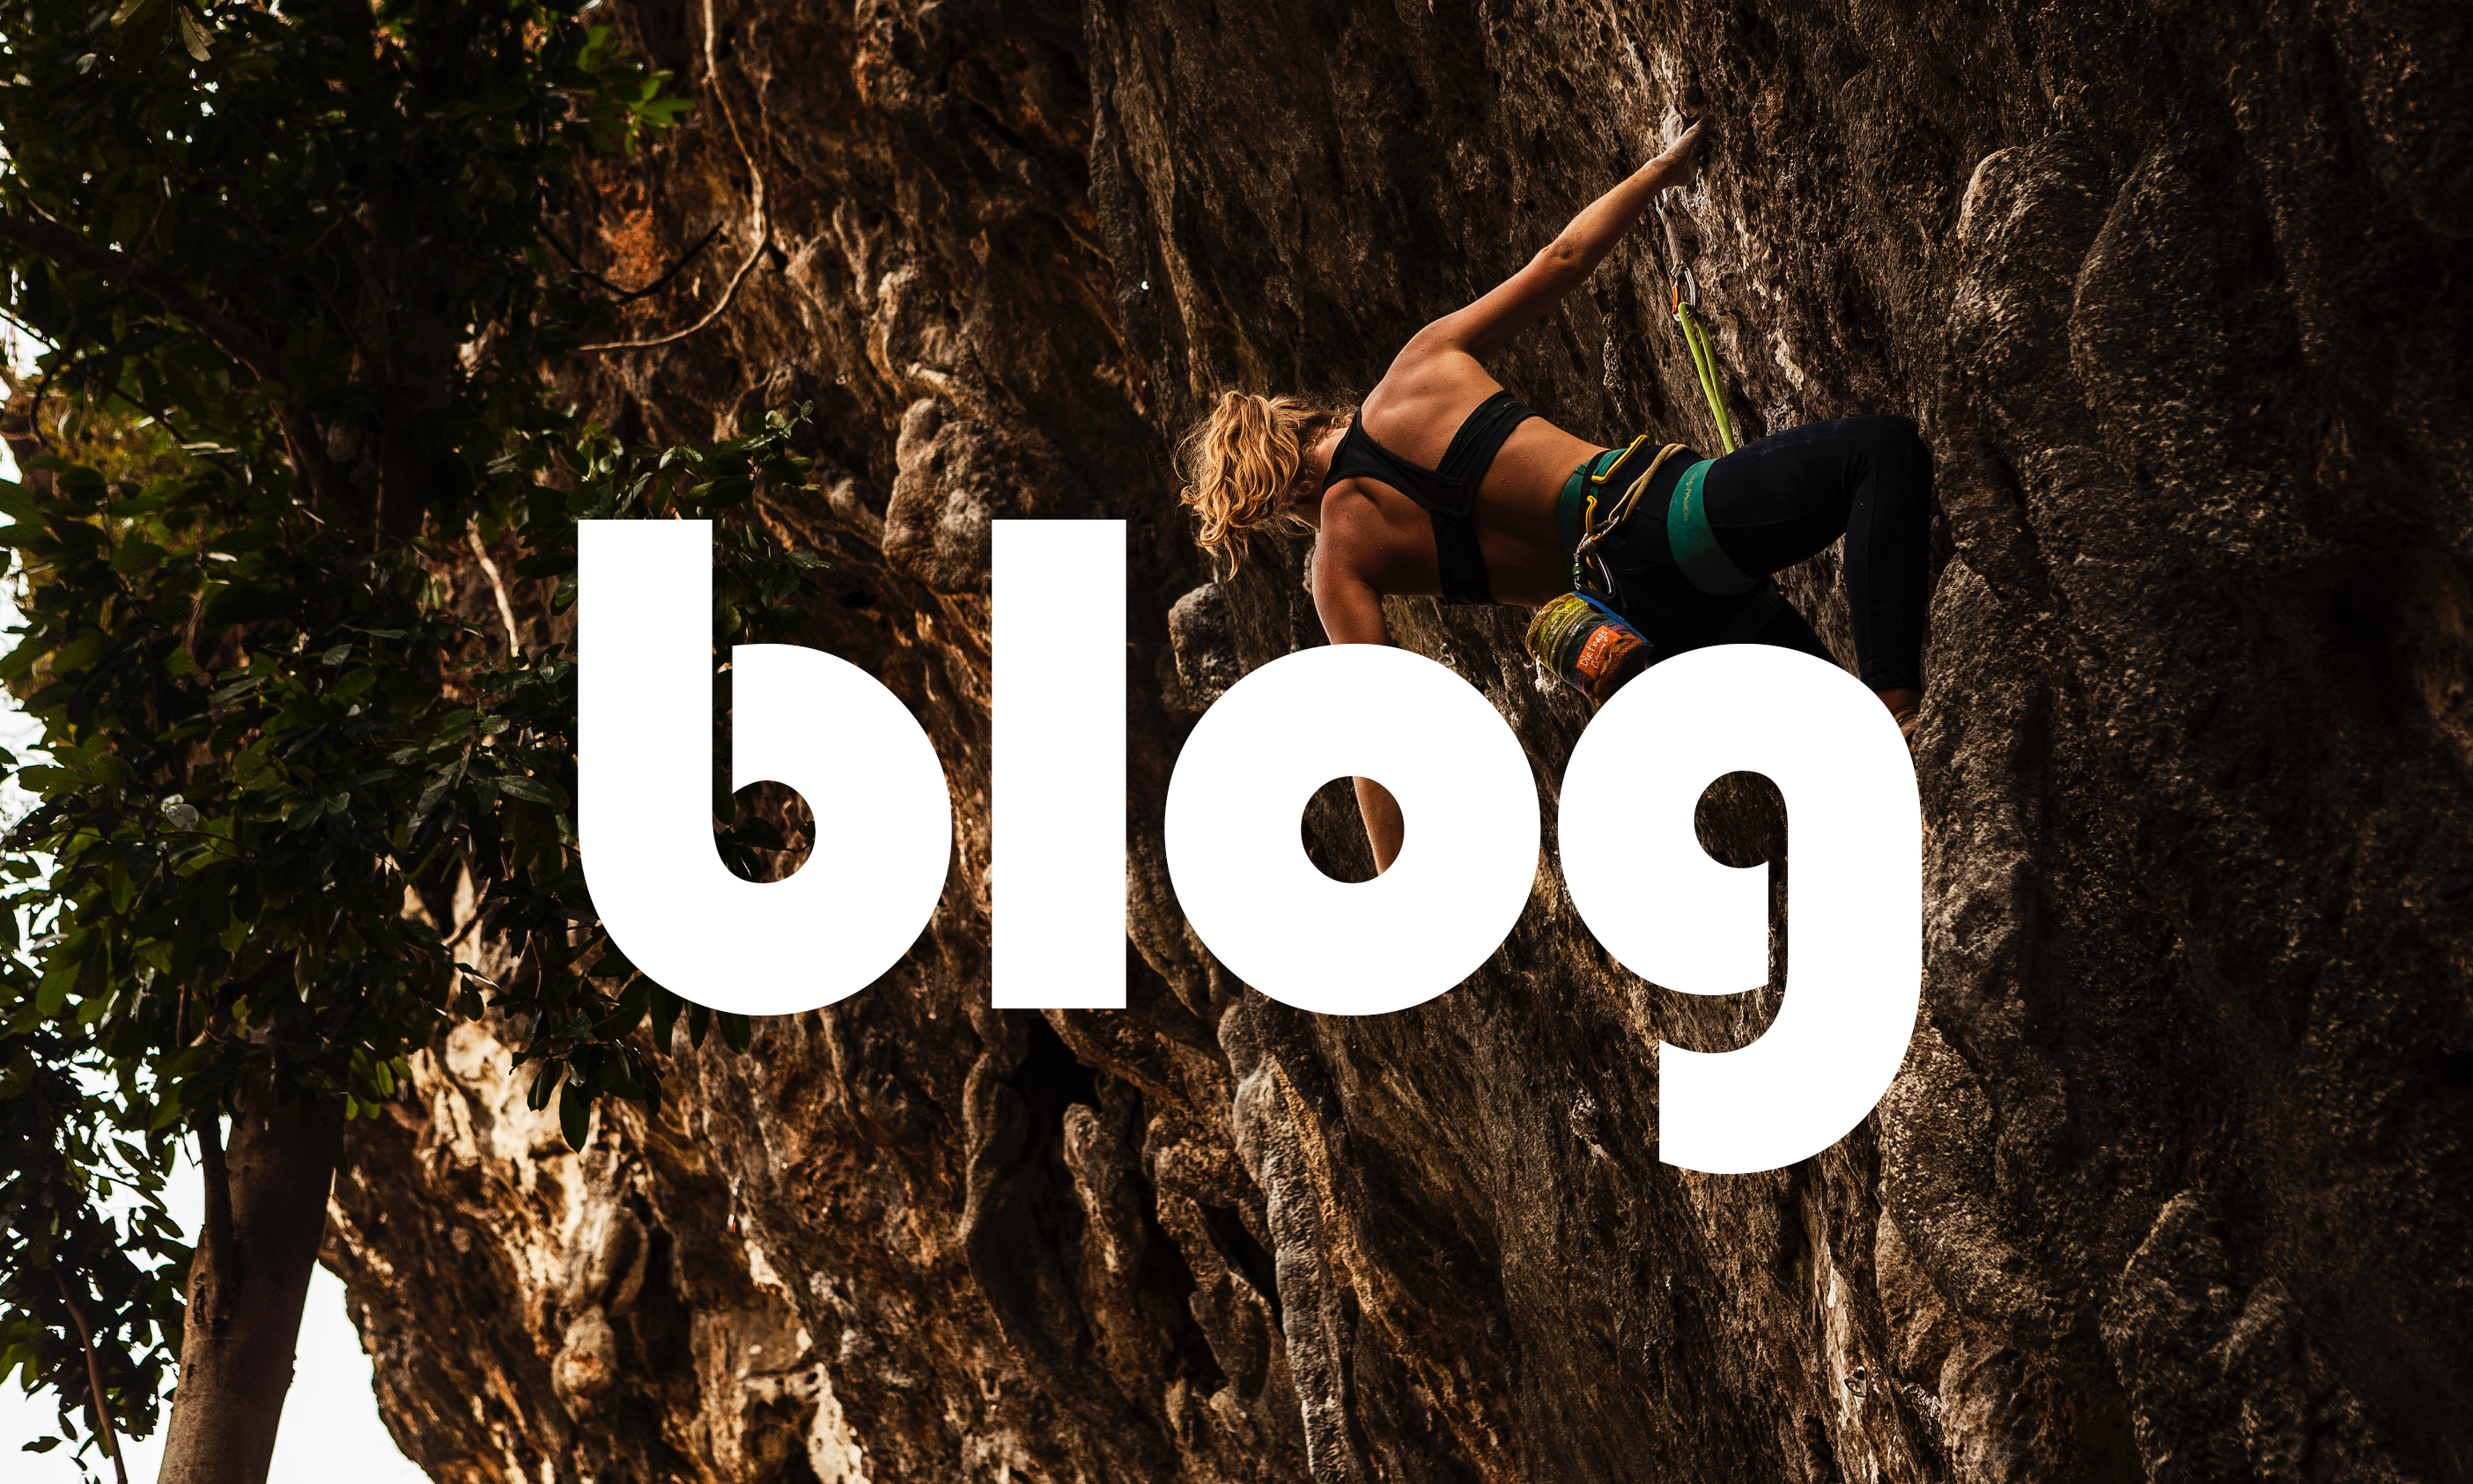 The word 'blog' in front of an image of Zoe hanging off an overhanging sport climb.